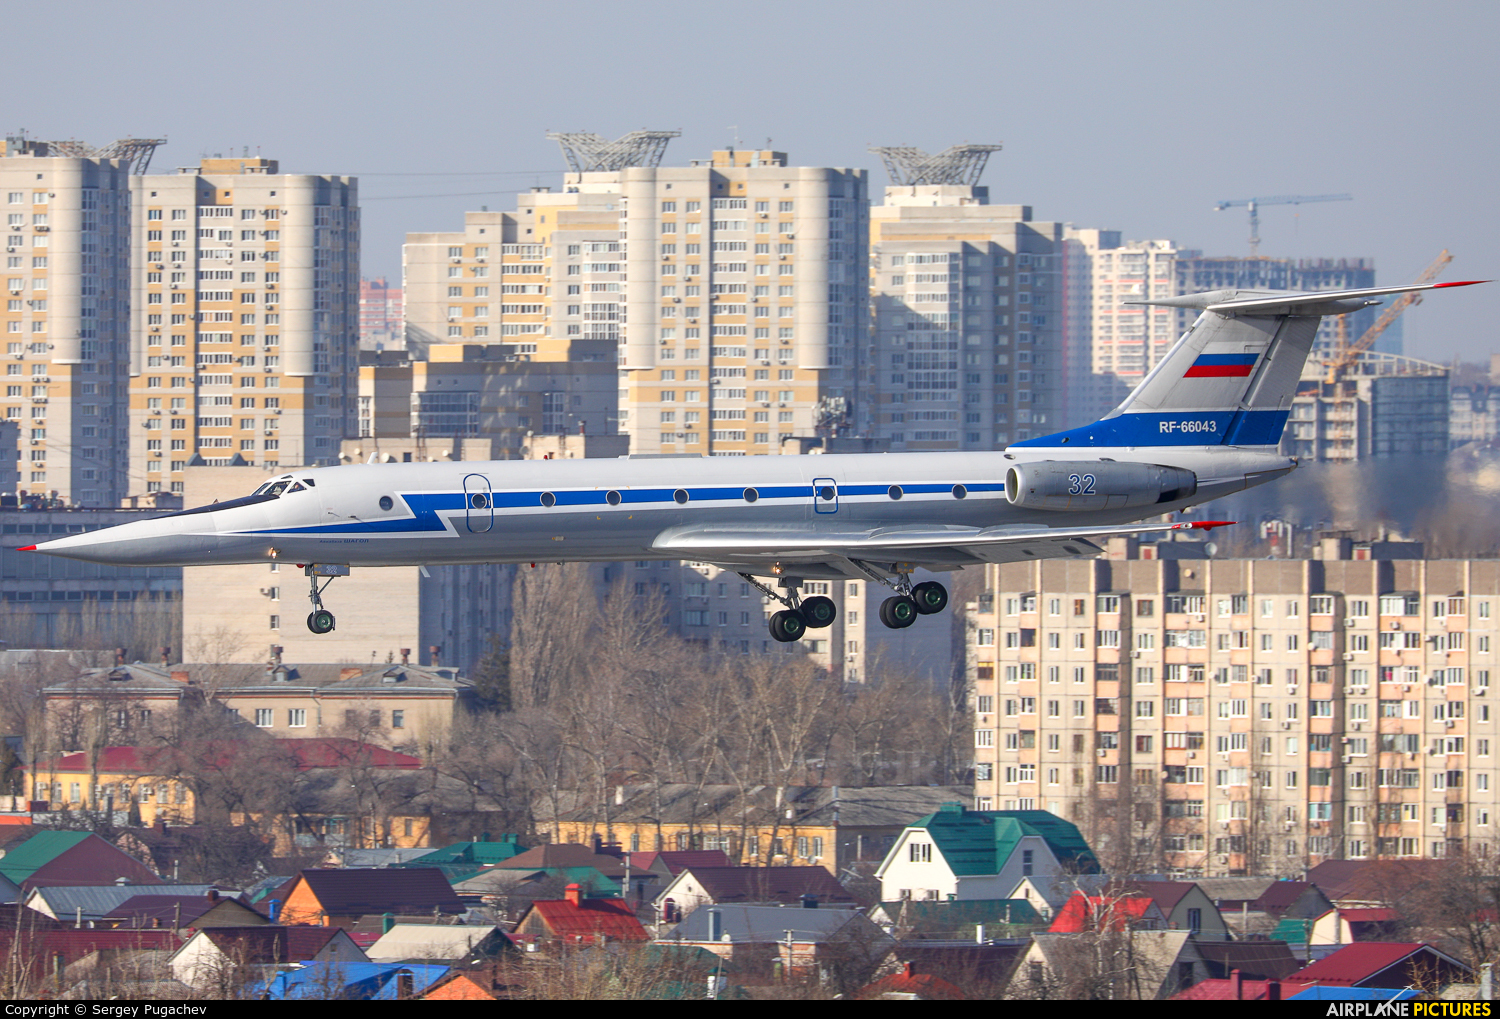 Russia - Air Force RF-66043 aircraft at Undisclosed Location